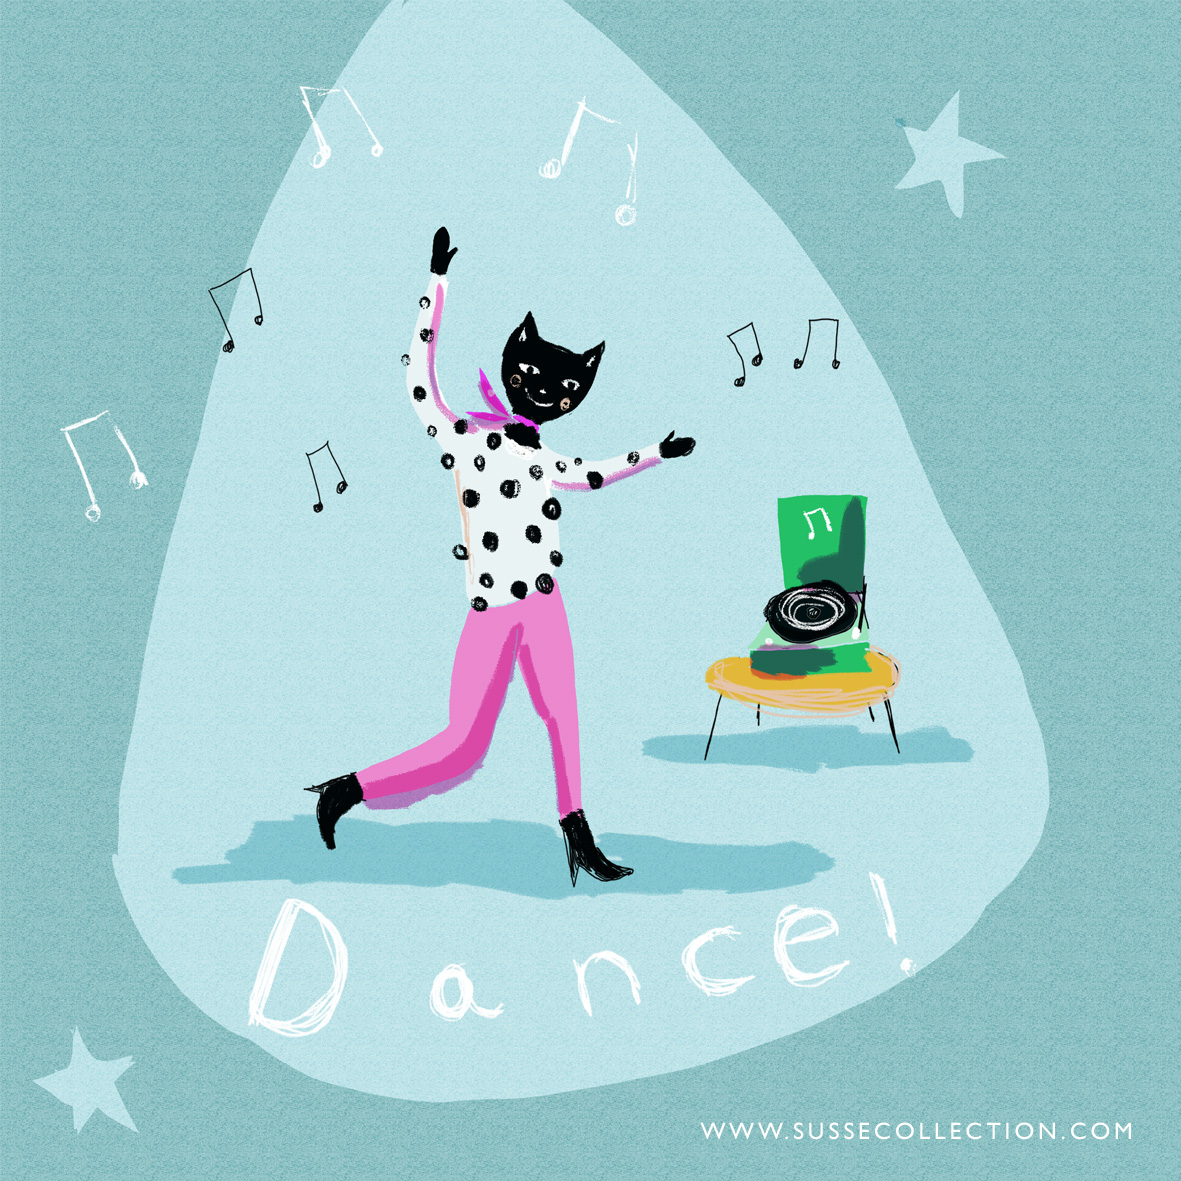 Susse Collection-Dance Happy.jpg